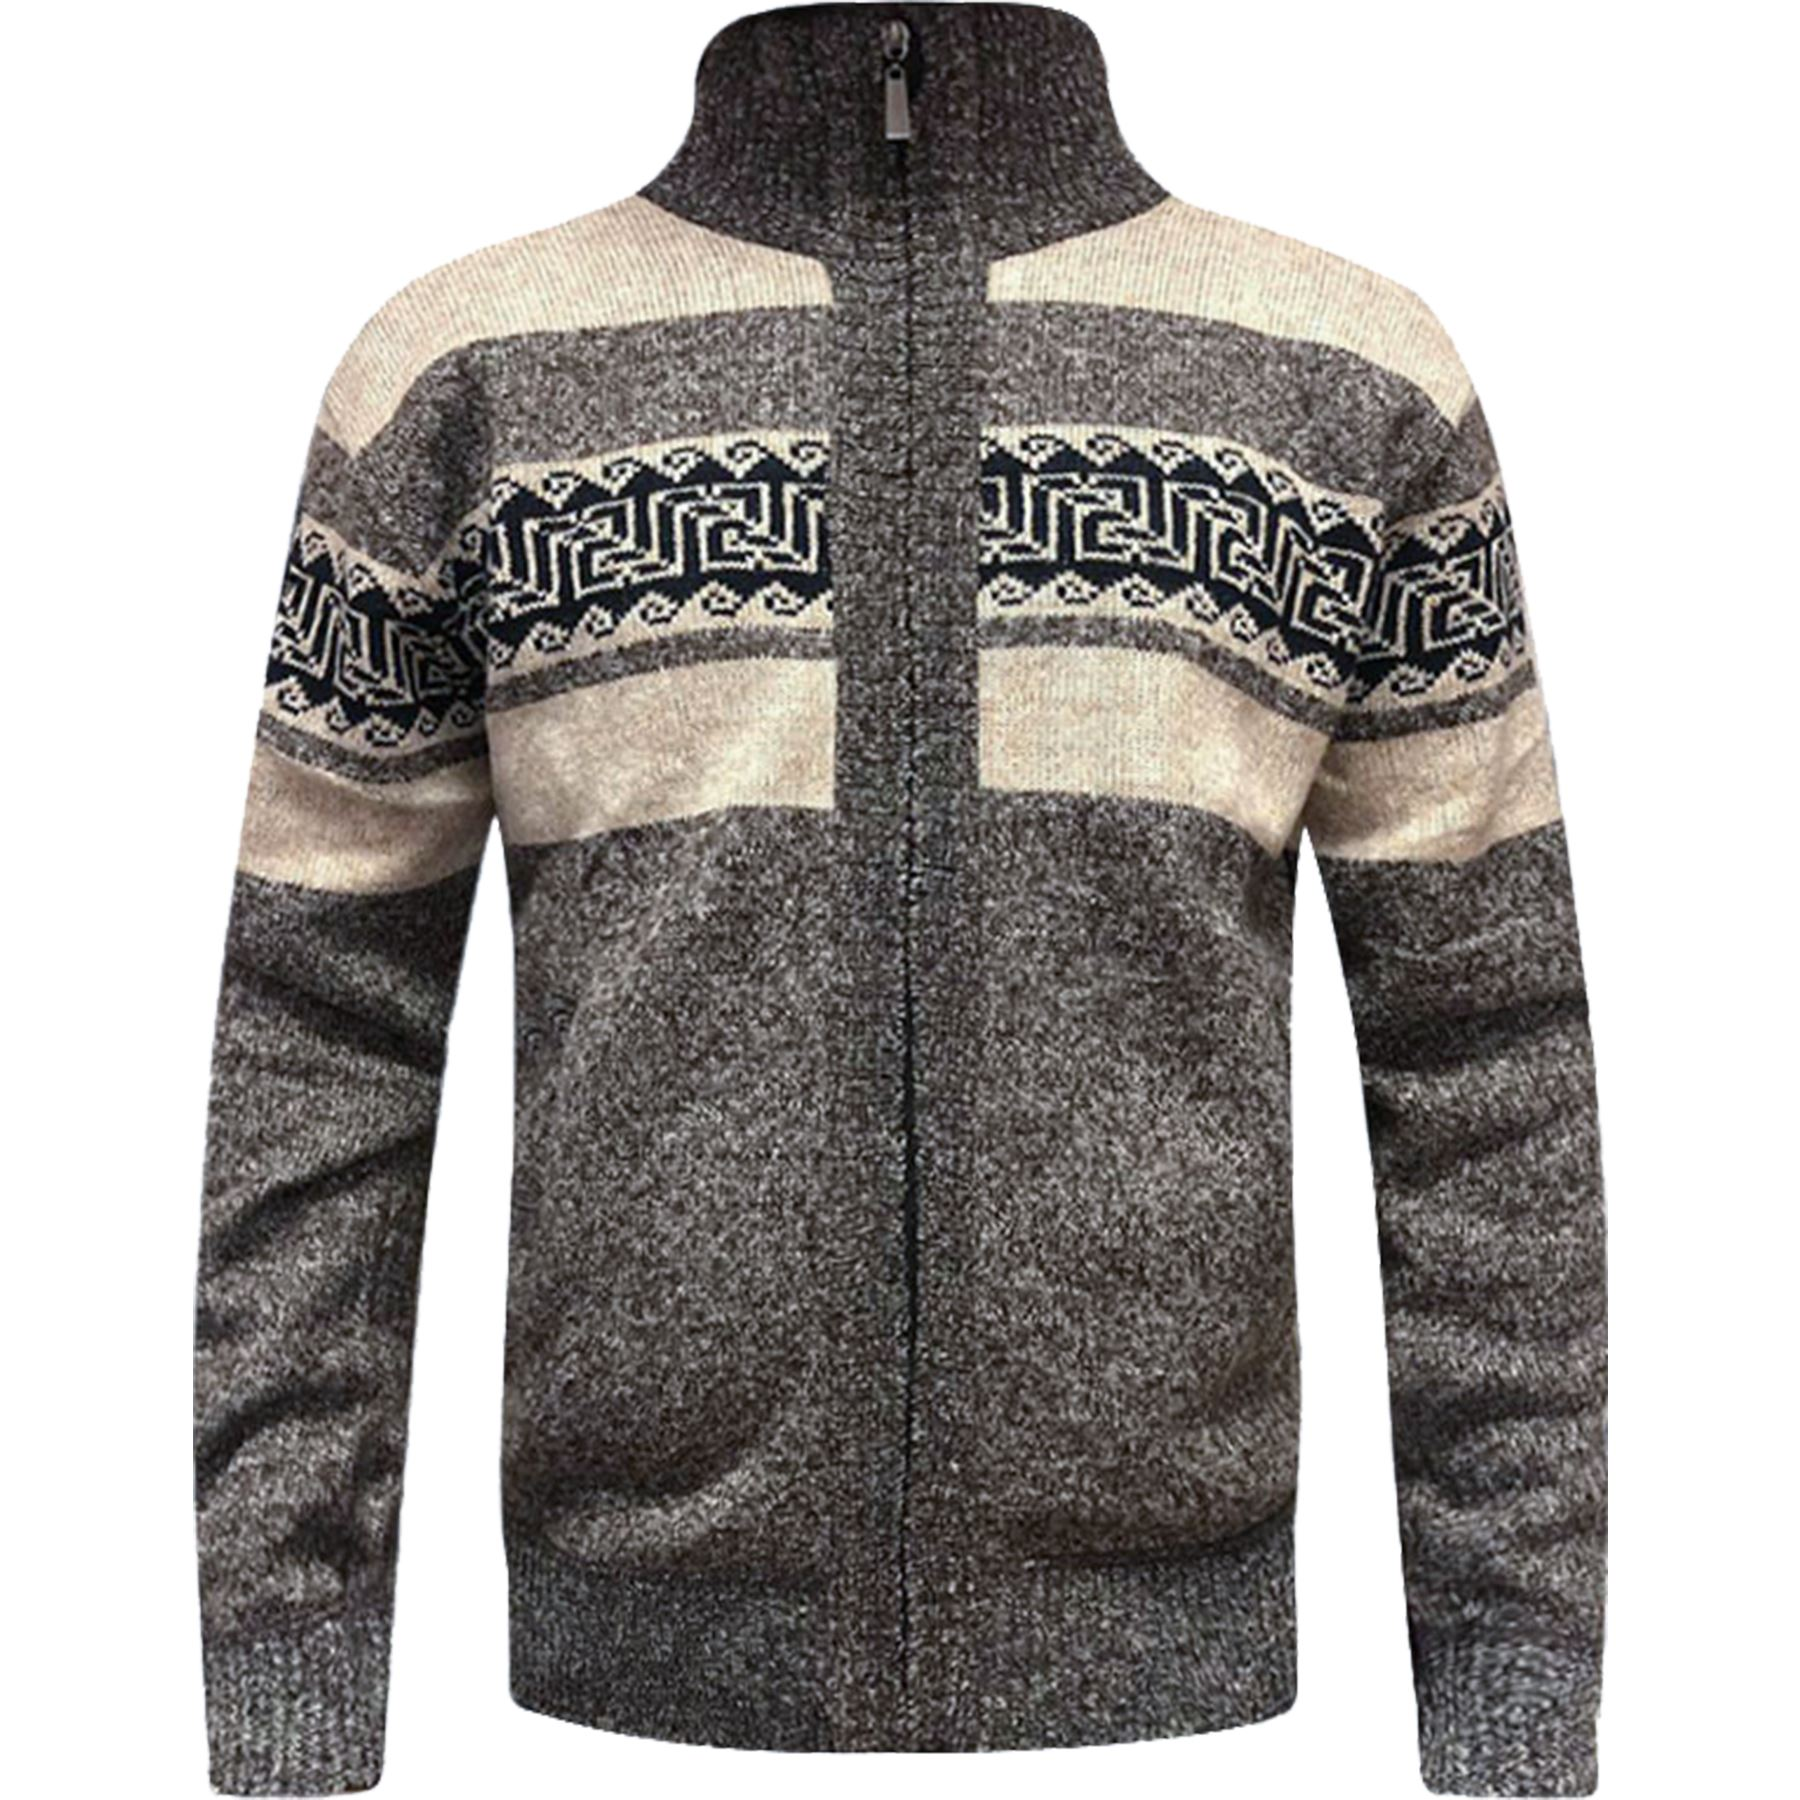 Mens-Zip-Up-Aztec-Fleece-Lined-Knitted-Cardigan-Xmas-Argyle-Wool-Blend-Jumper thumbnail 3